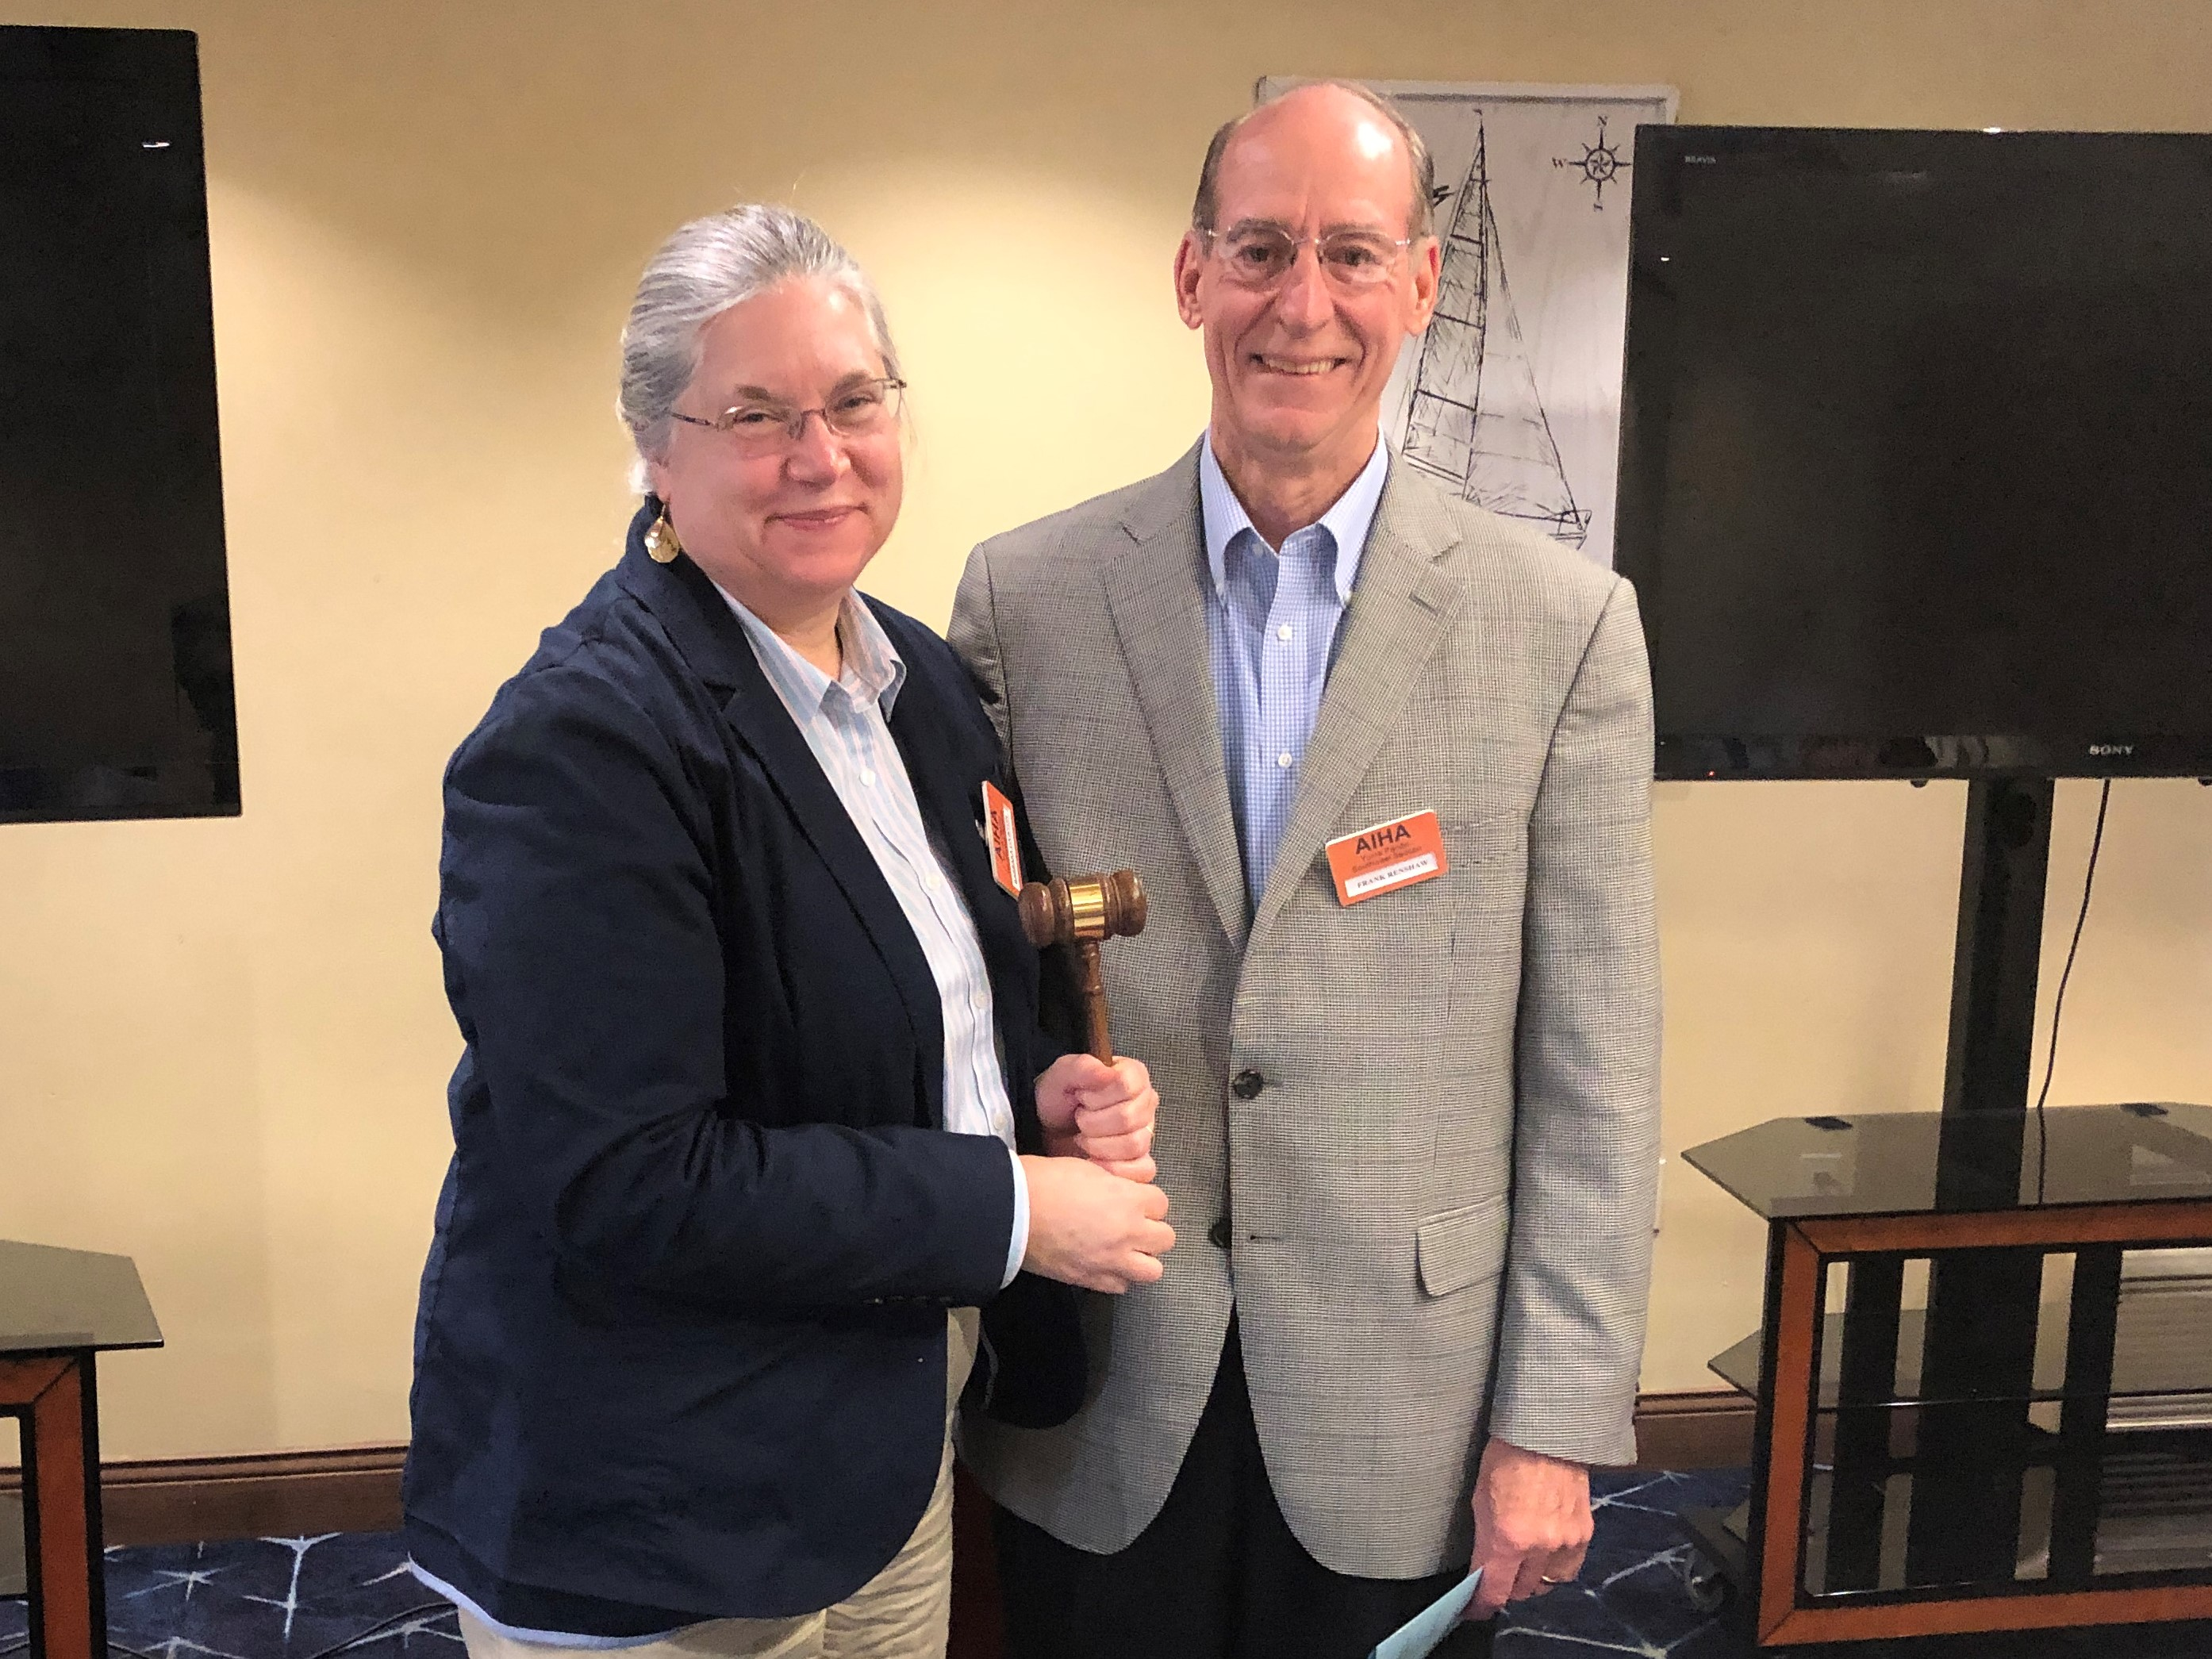 Passing the Gavel to incoming President Barbara Dawson